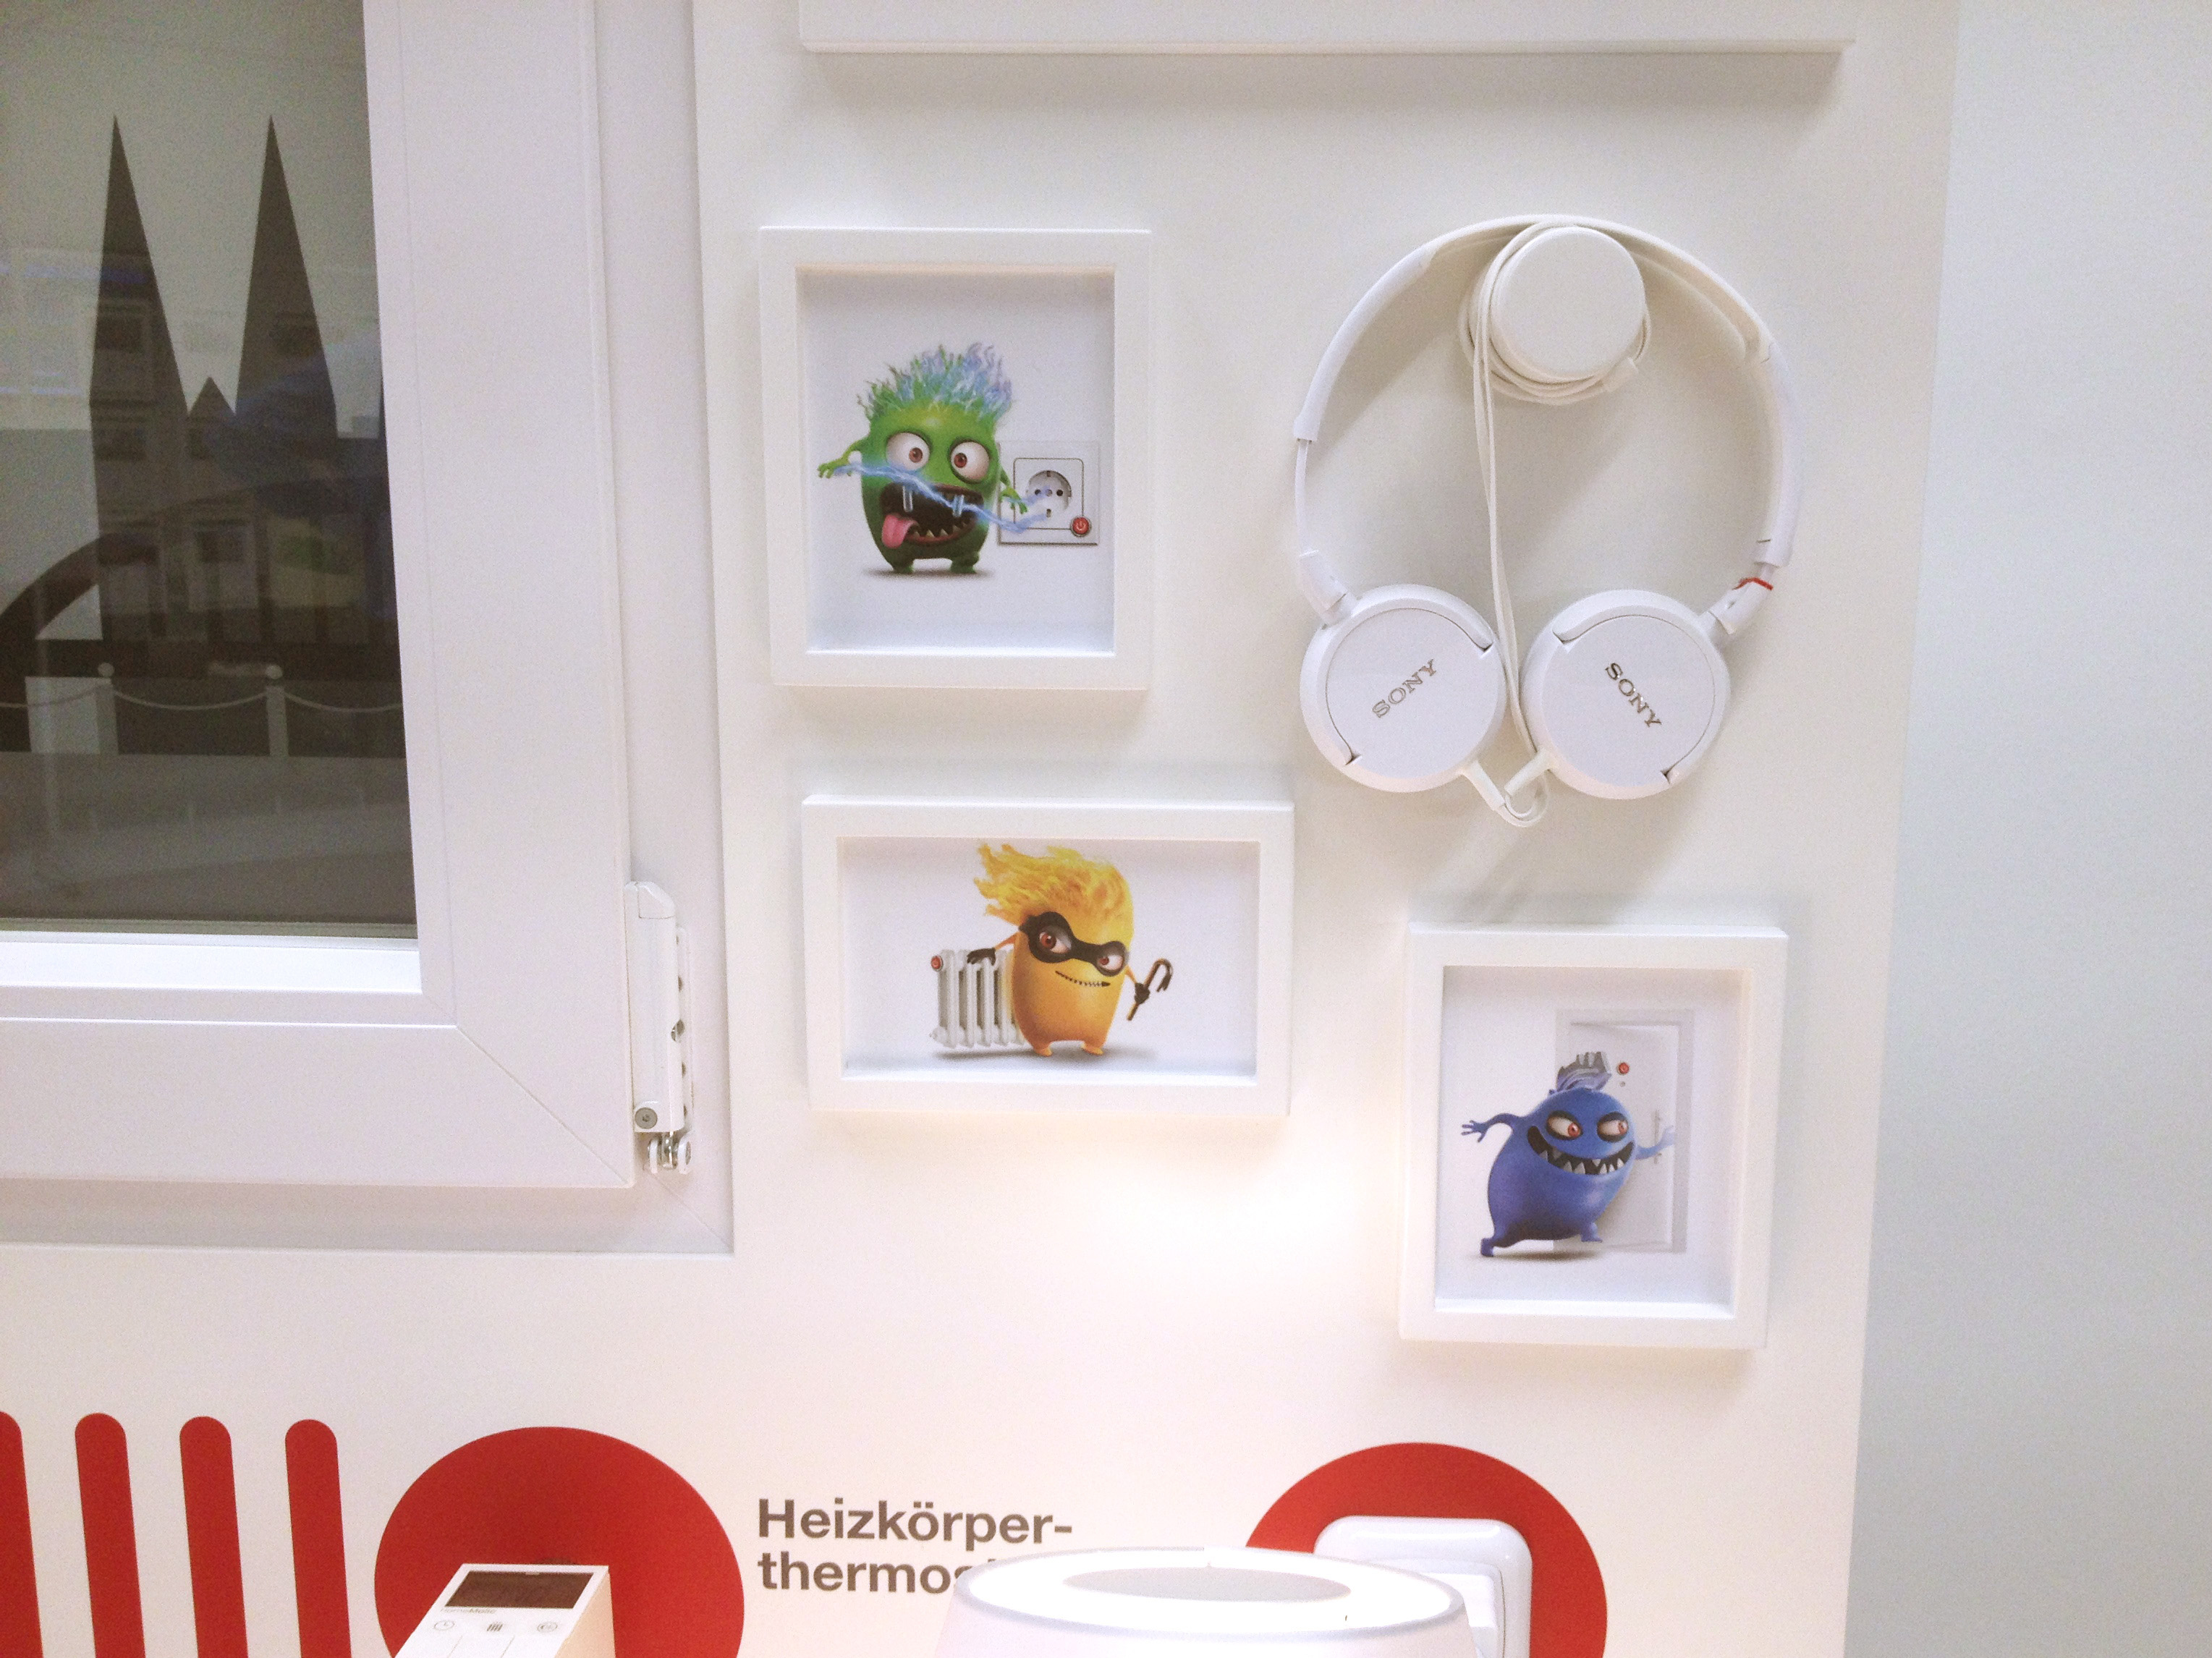 Pictures of RheinEnergie's campaign mascots and Headphones